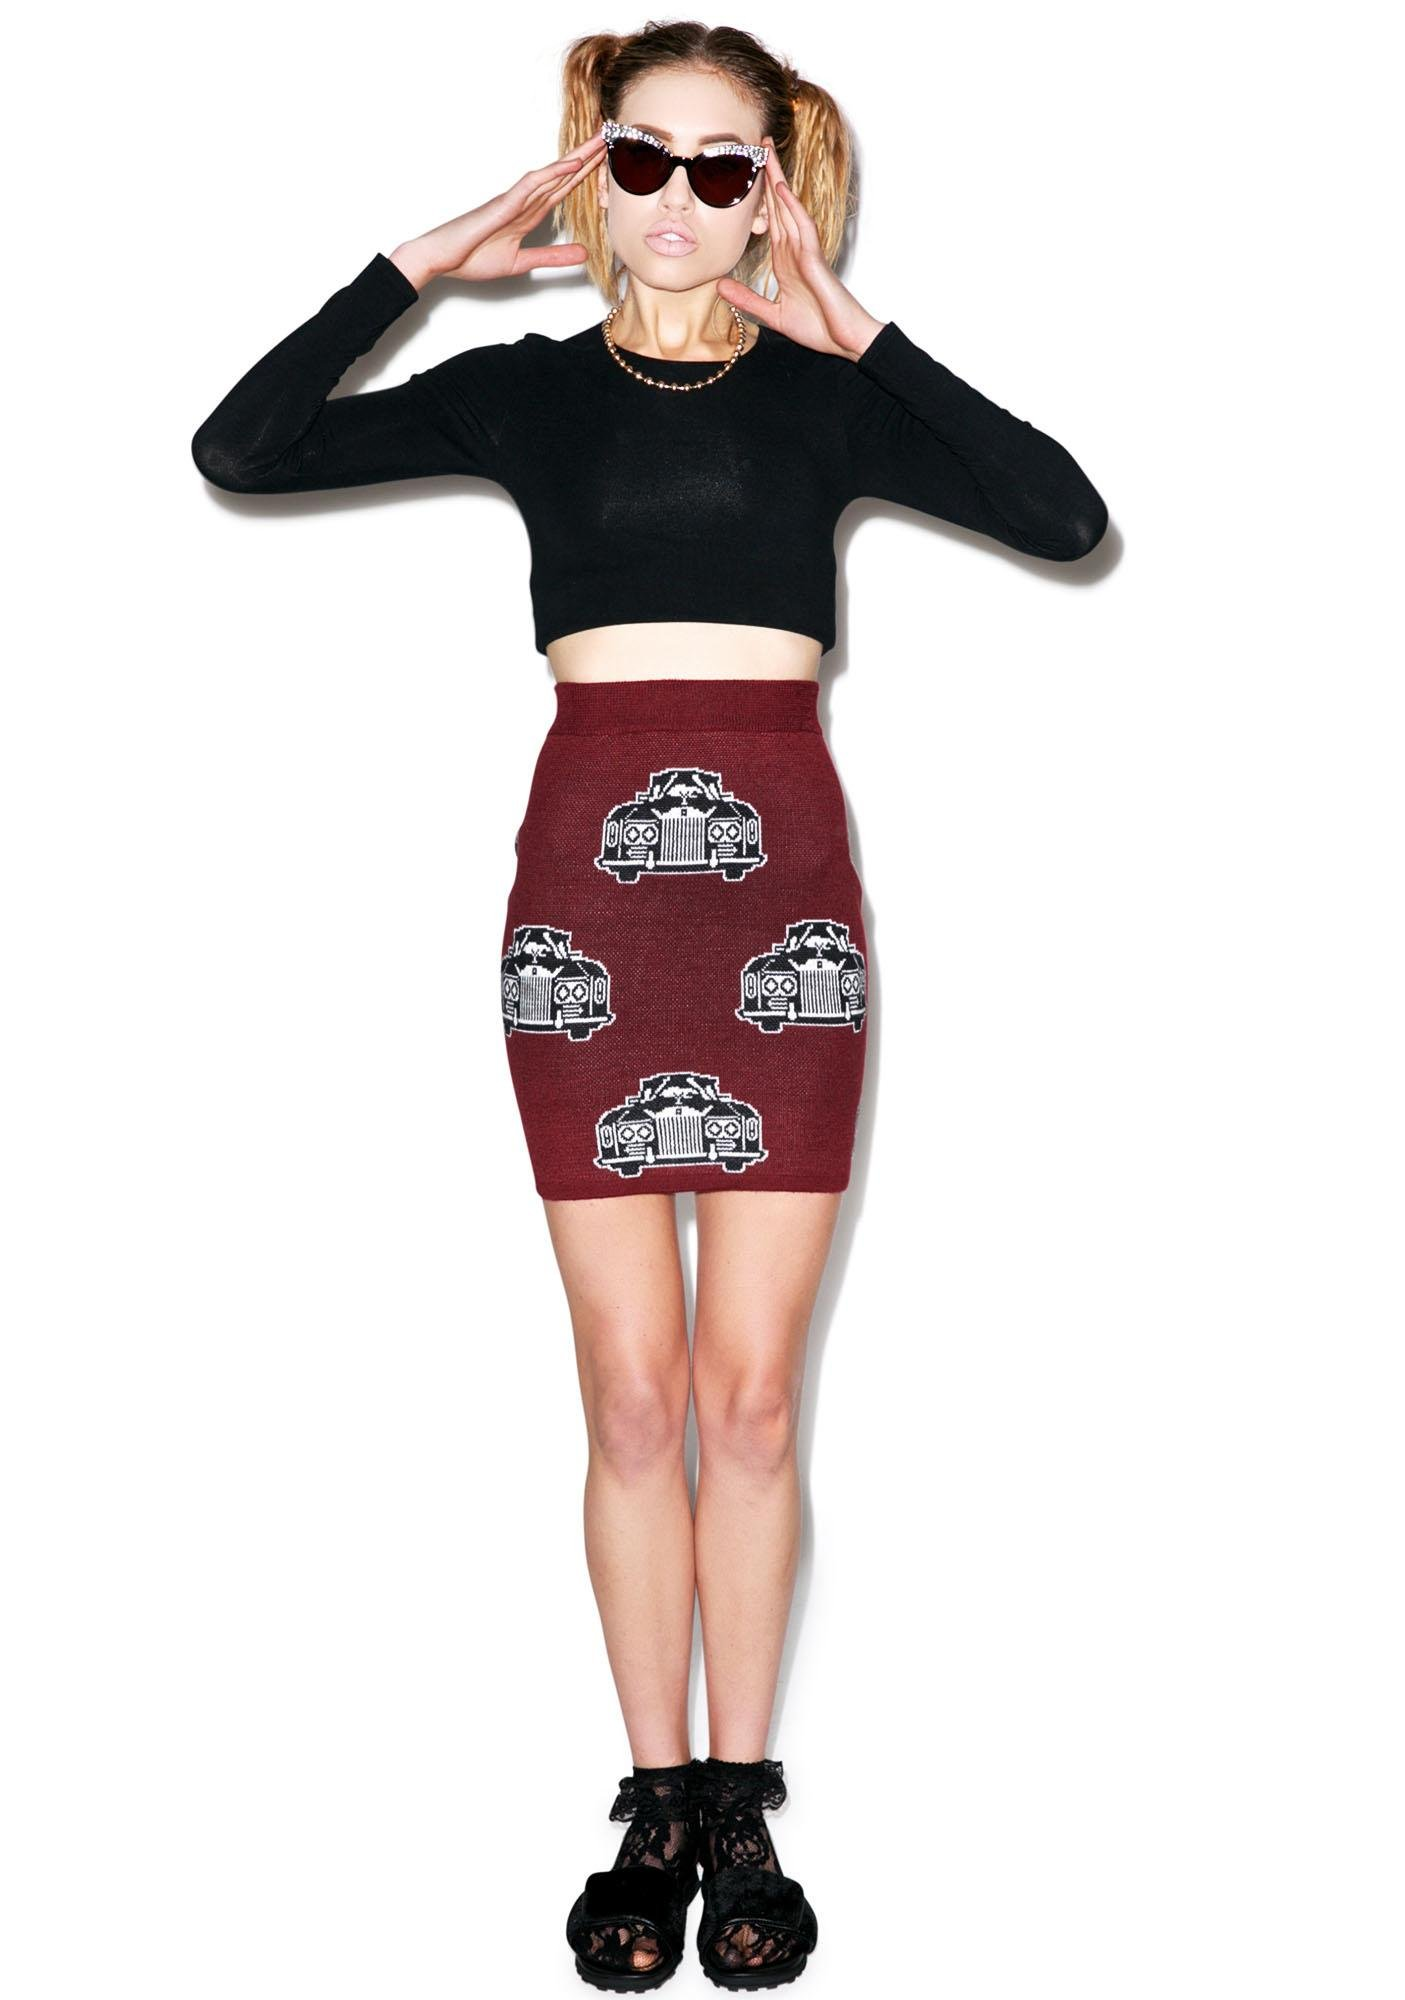 Joyrich Royal Ride Mini Tube Skirt